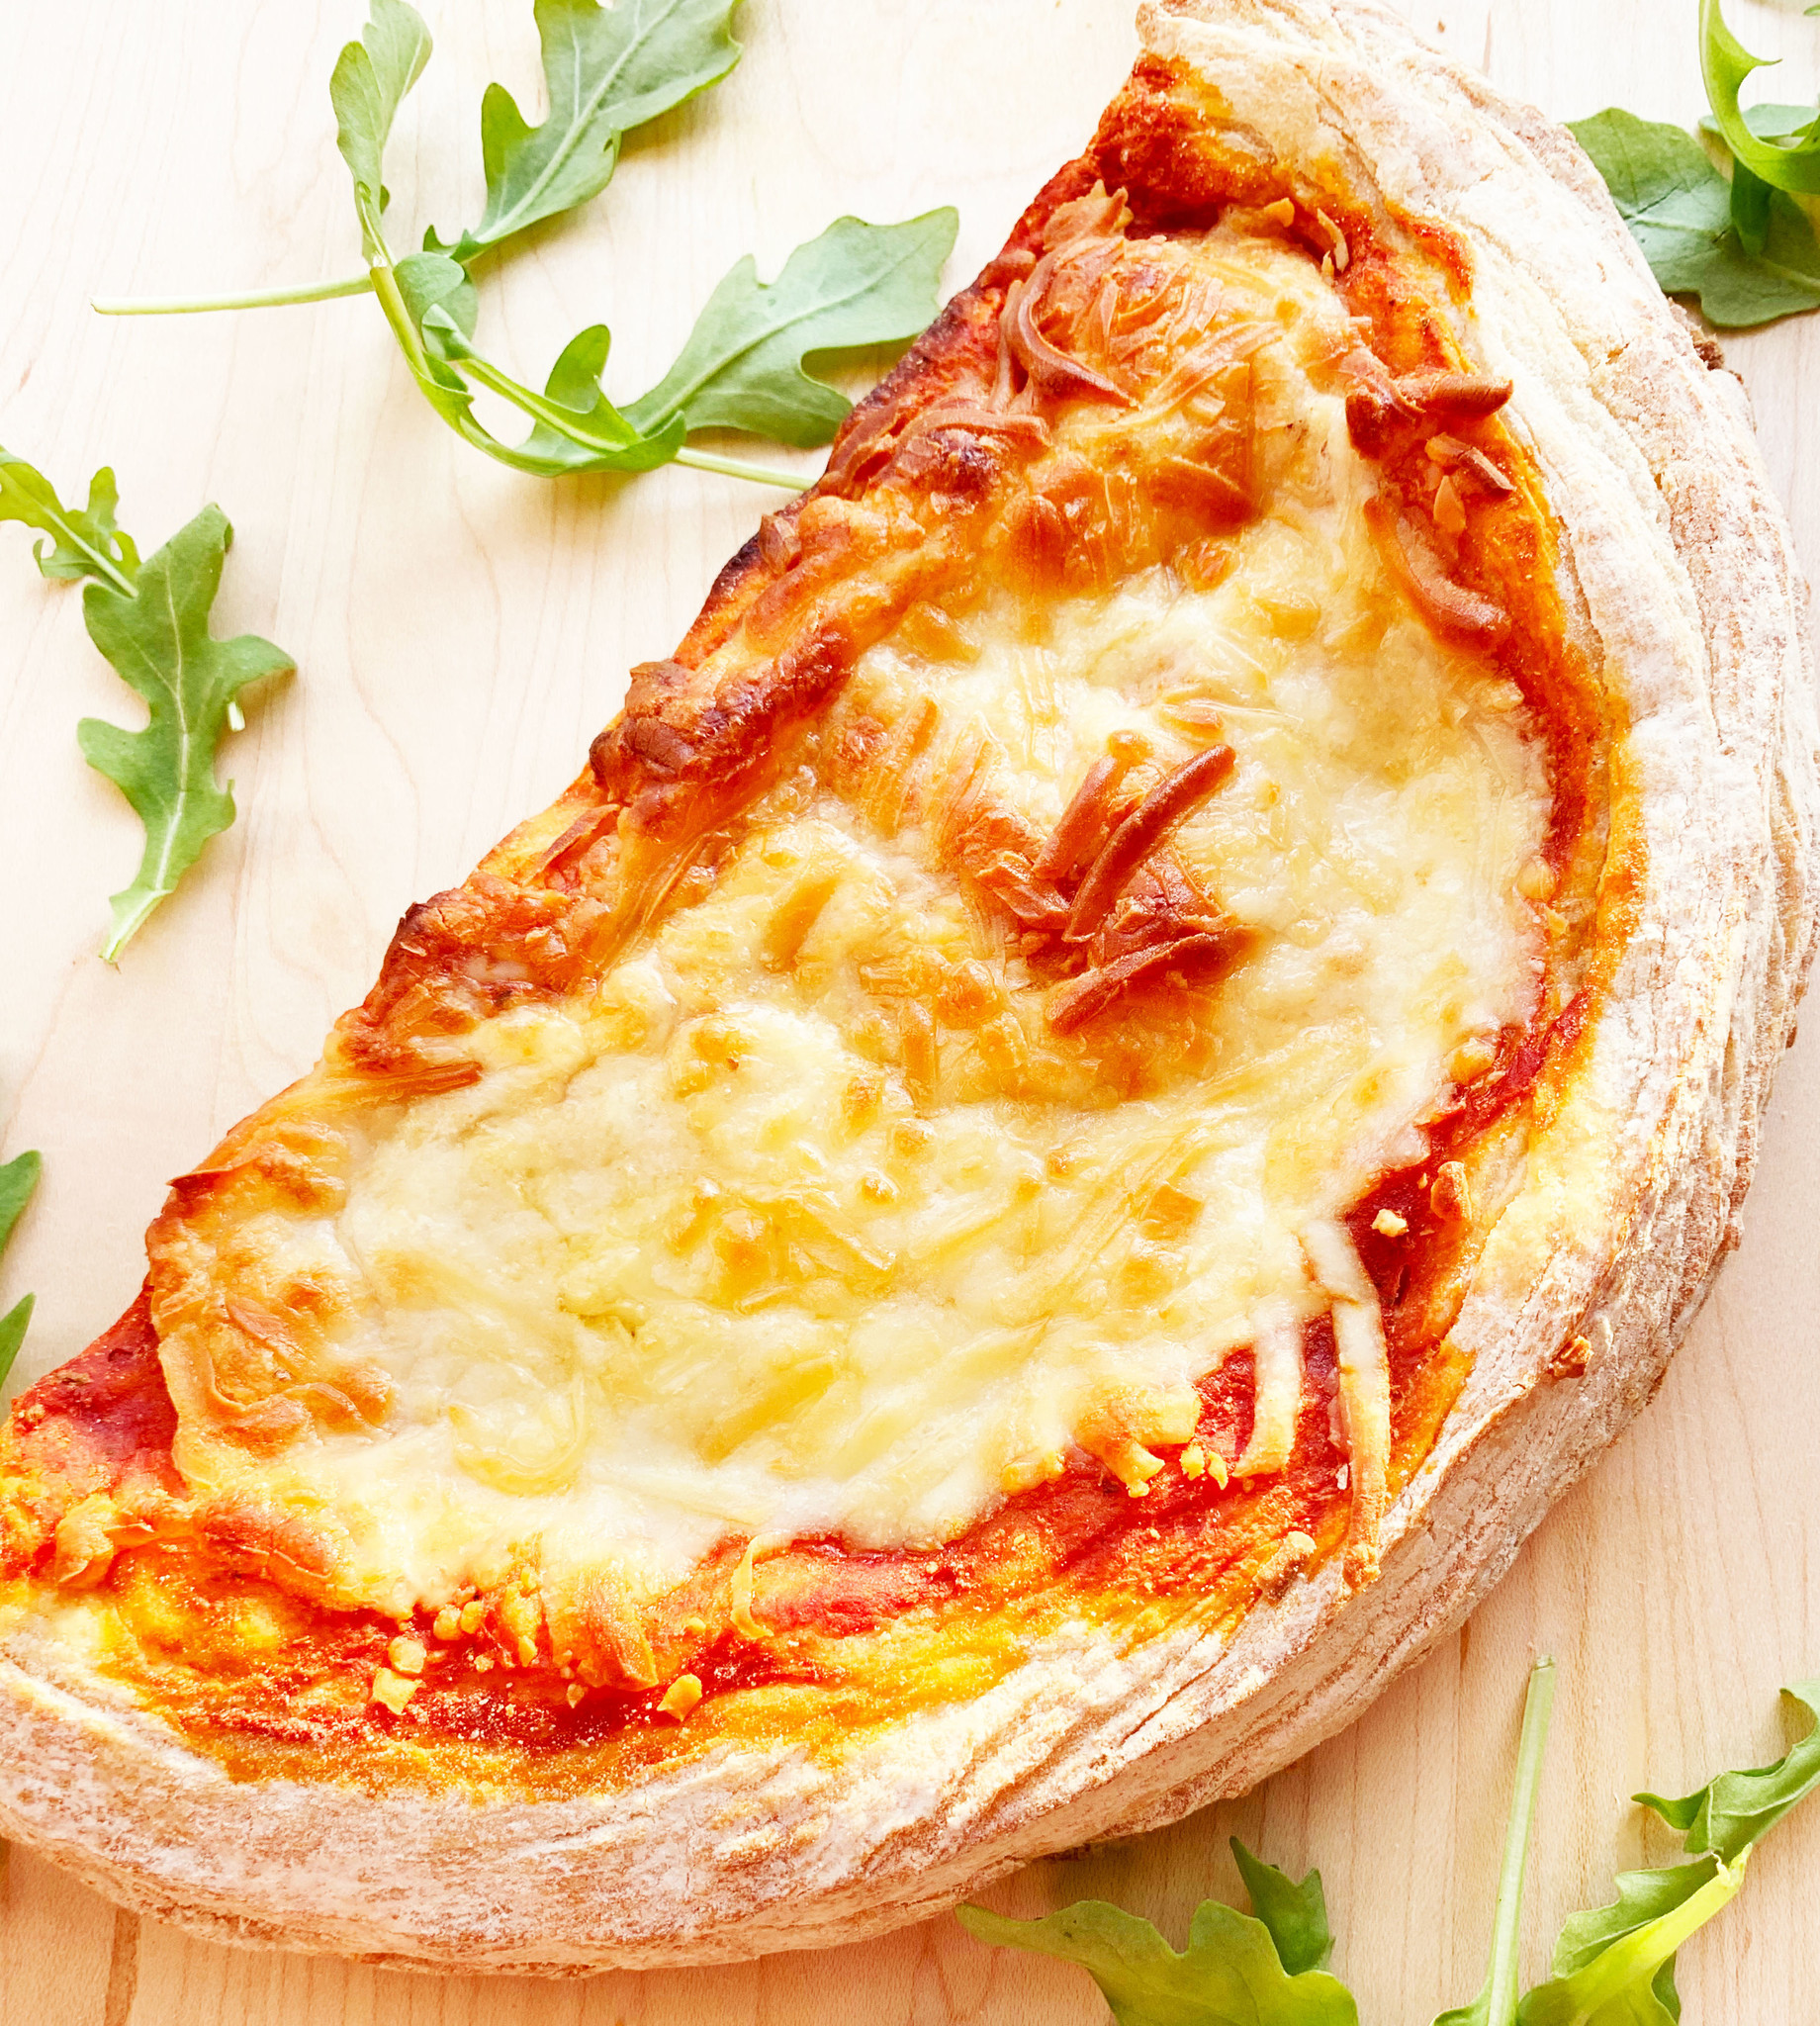 New York style cheese pizza with artisan crust